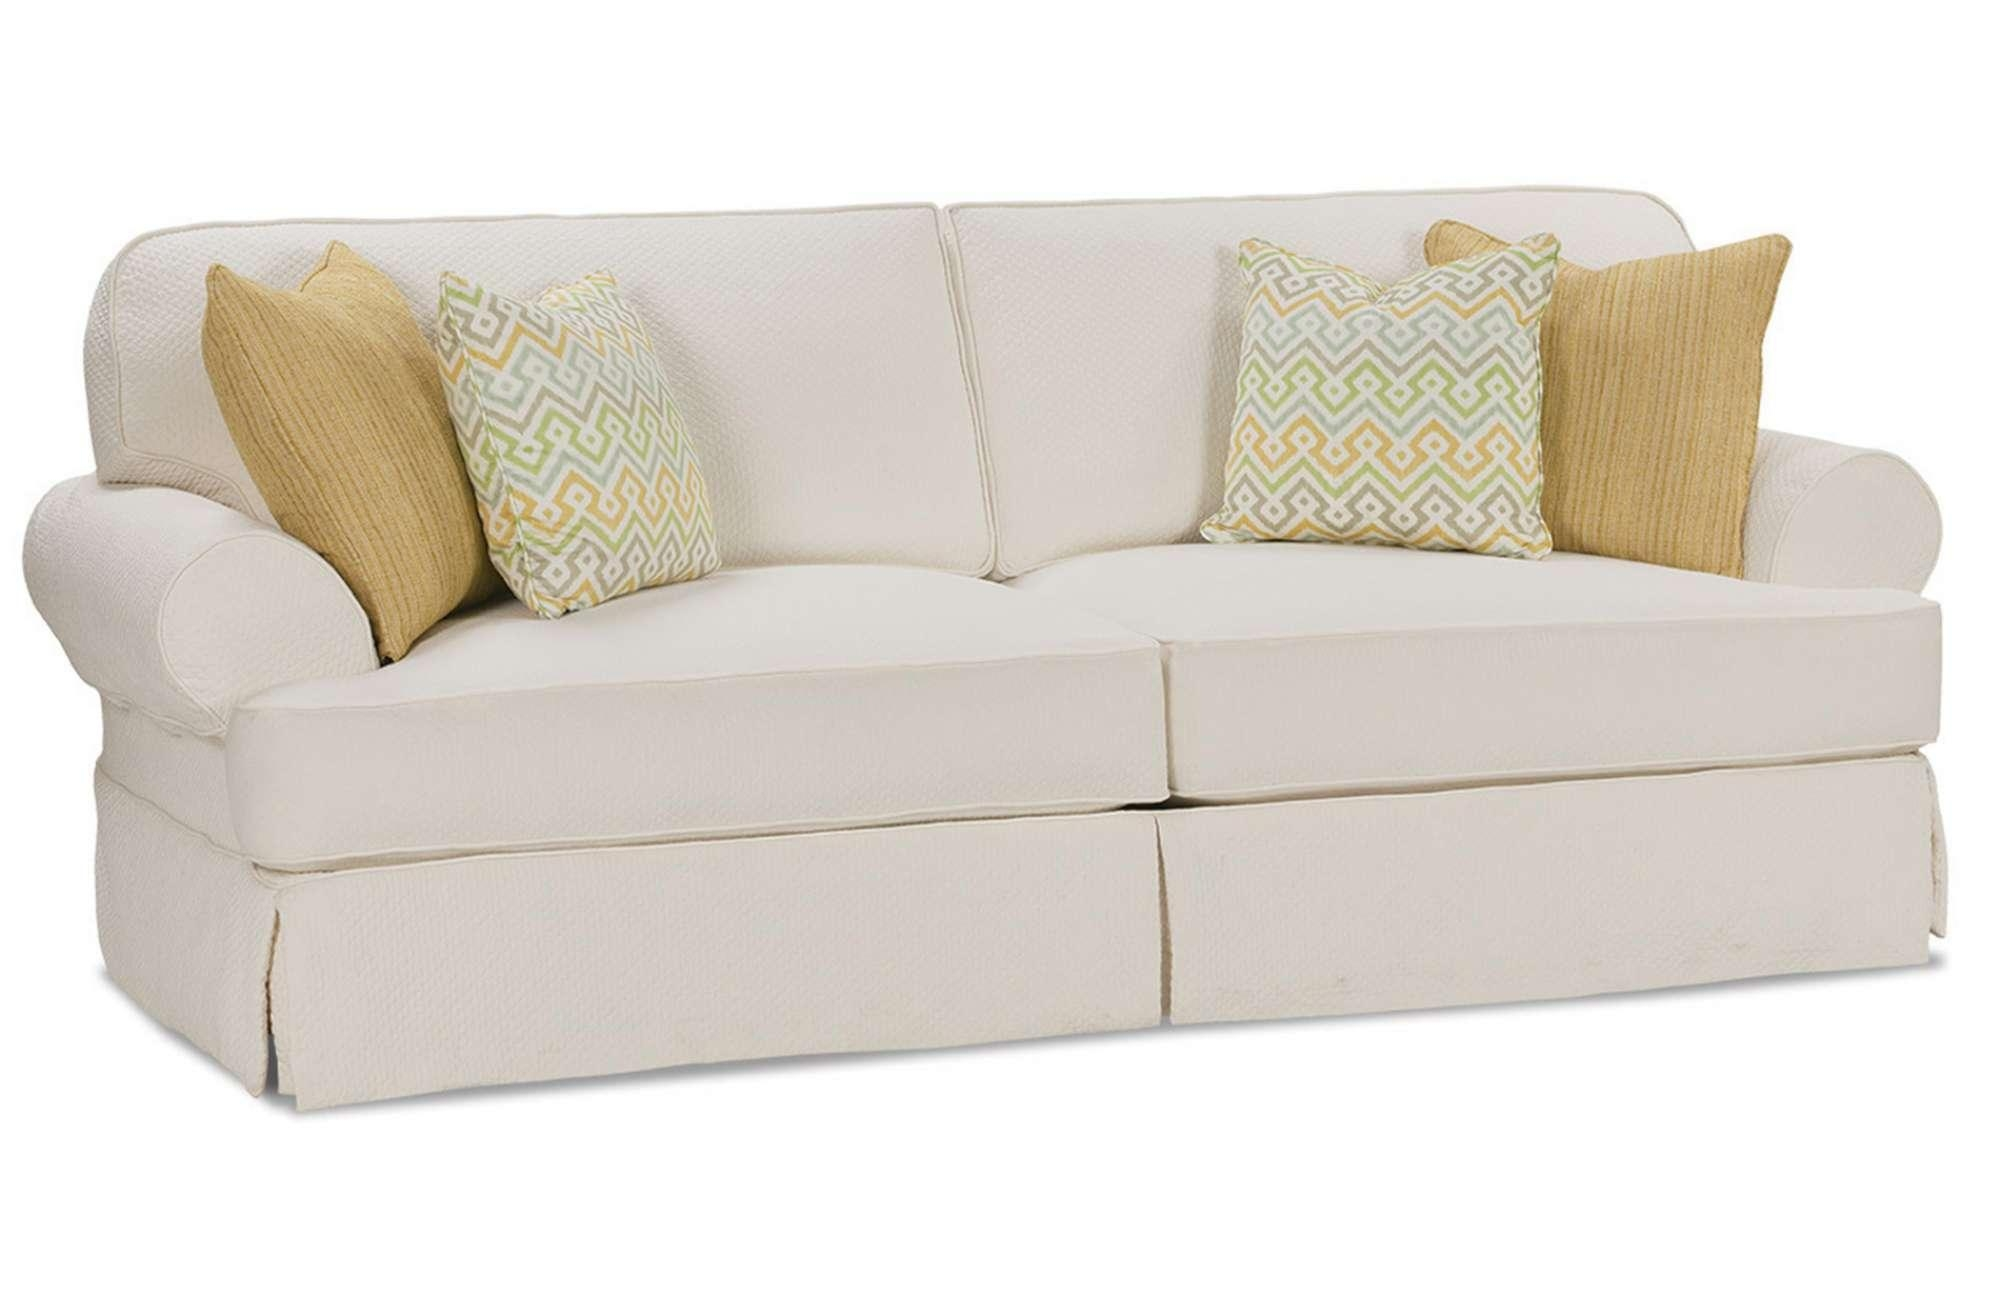 Chair & Sofa: Usual Slipcovered Sofas For Classic Sofa Idea Pertaining To Washable Sofas (Image 1 of 20)